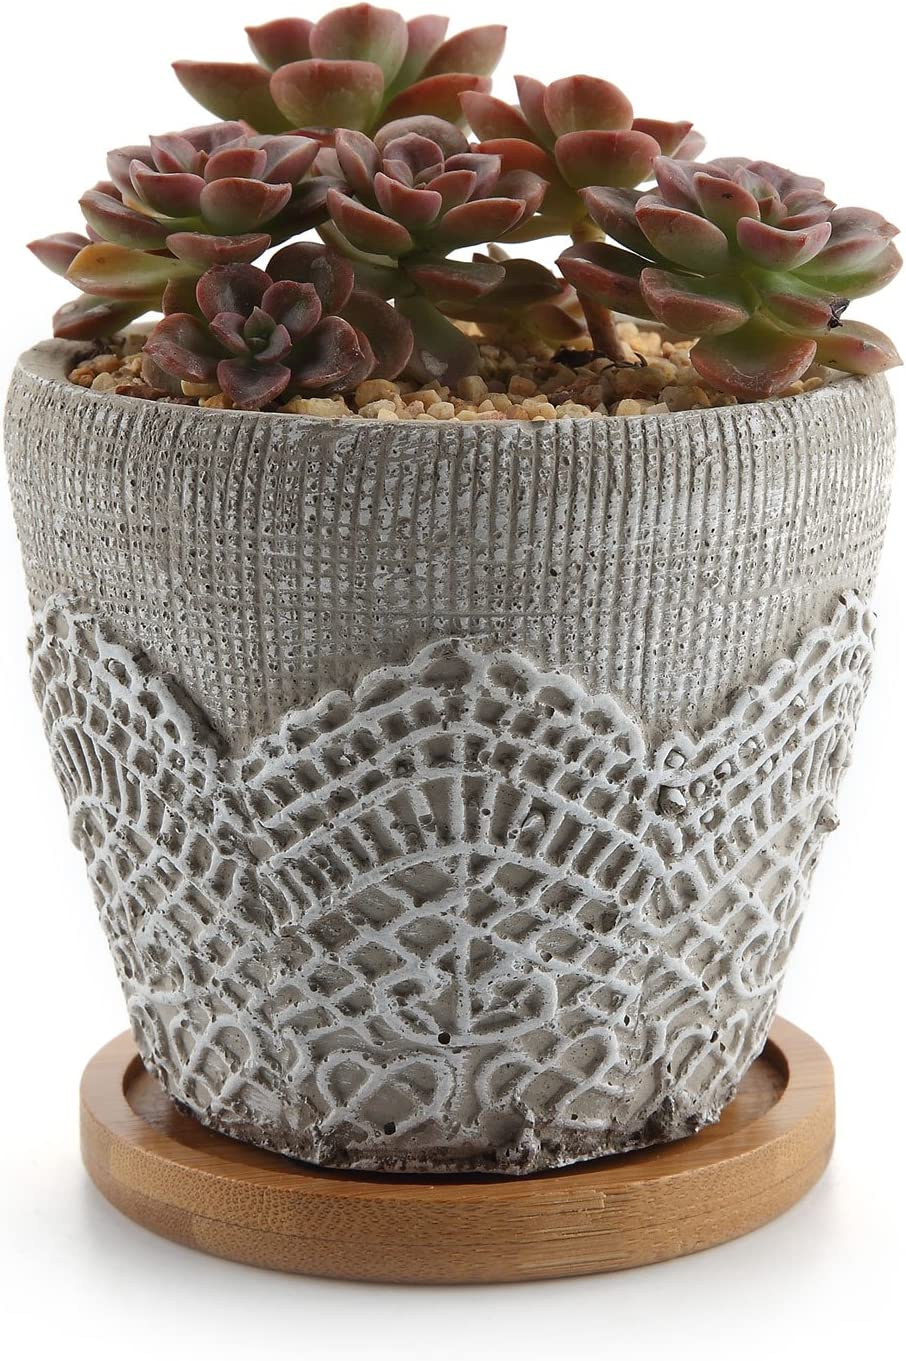 T4U 3.75 Inch Cement Lace Pattern Pot Succulent Plant Planter Cactus Plant Container Classic Design with Bamboo Tray – Pack of 1